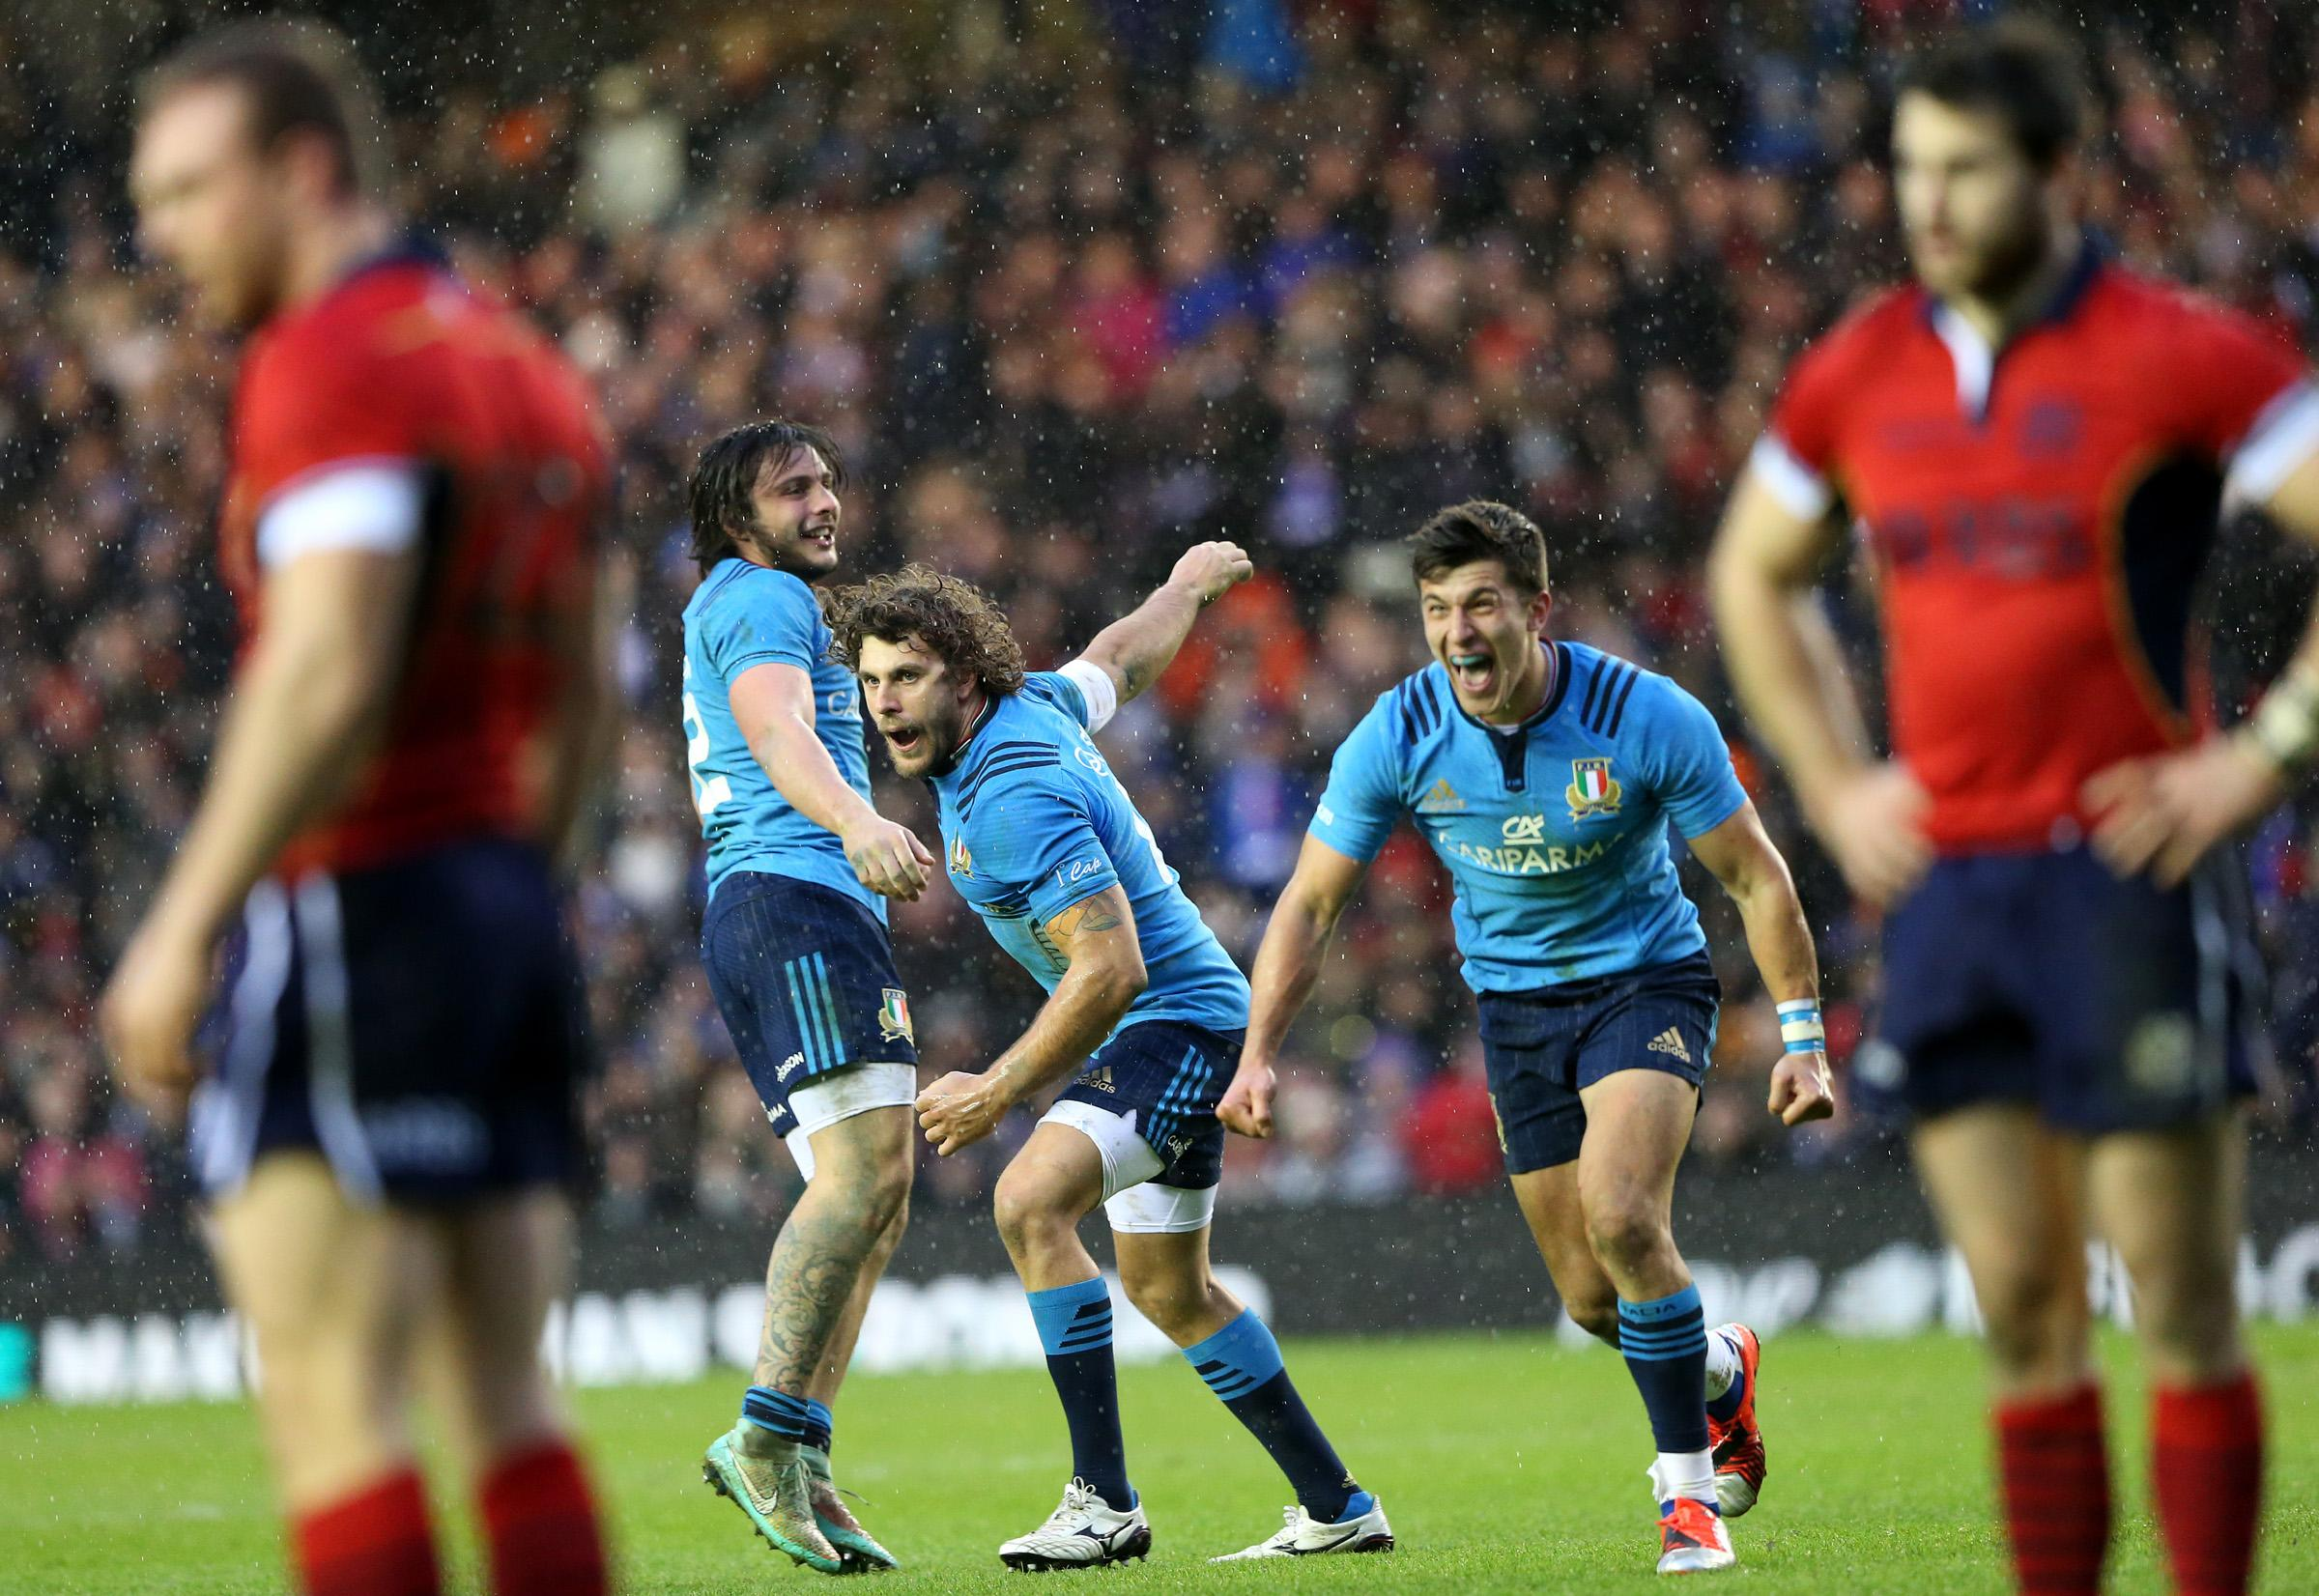 6N: Italy beats Scotland 22-19 with late penalty try